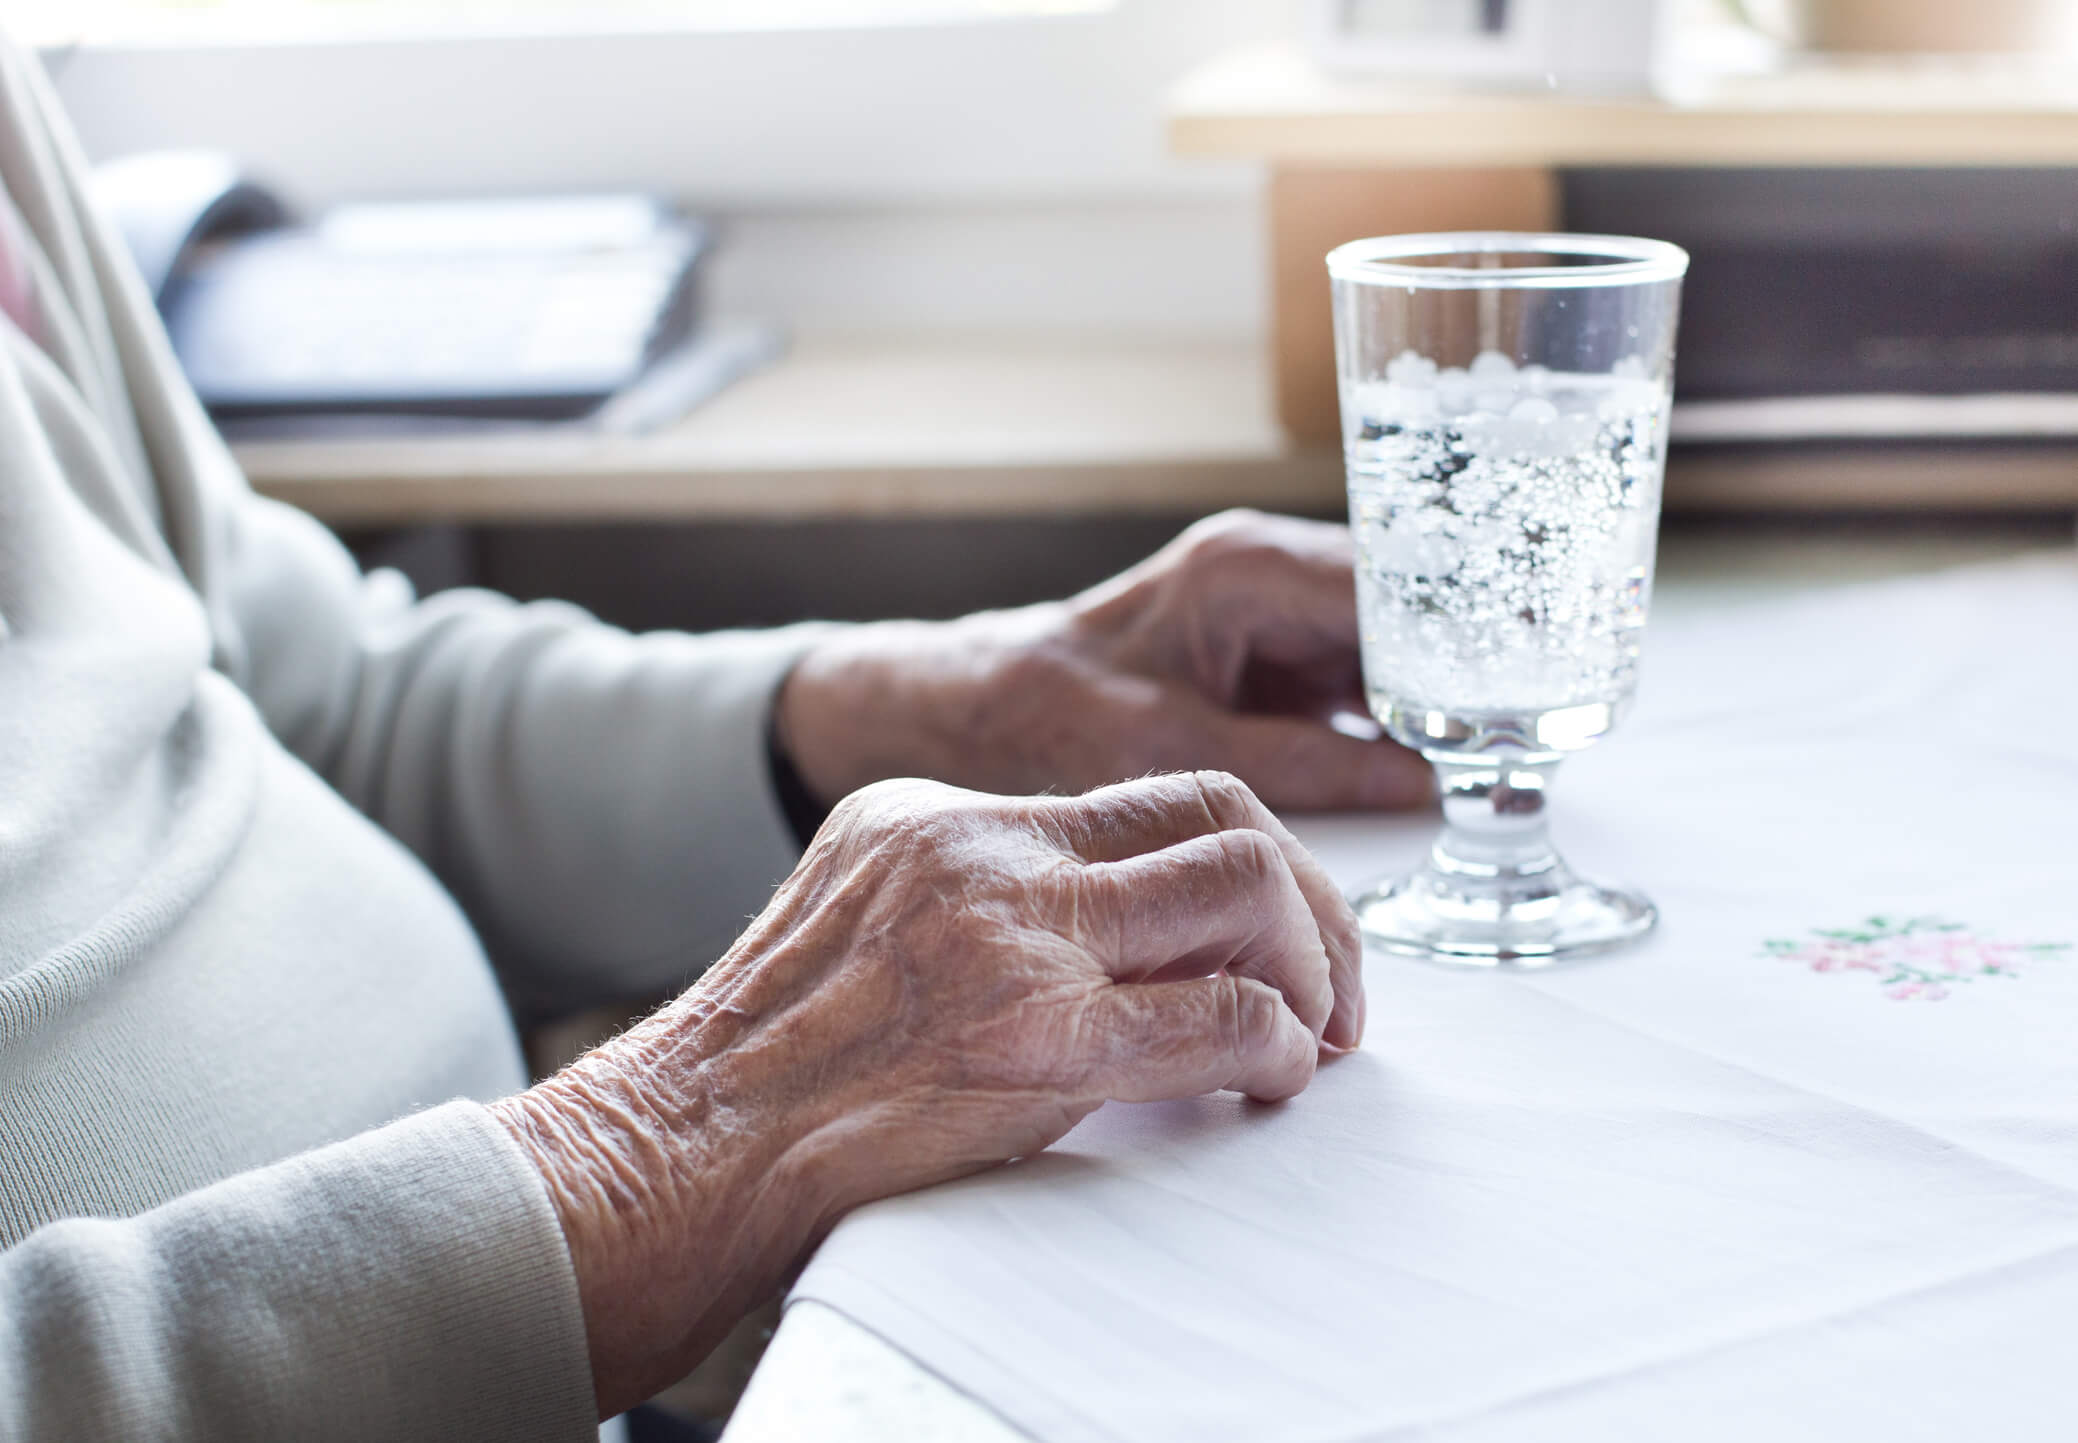 dehydration in elderly and its causes, symptoms, treatment and types